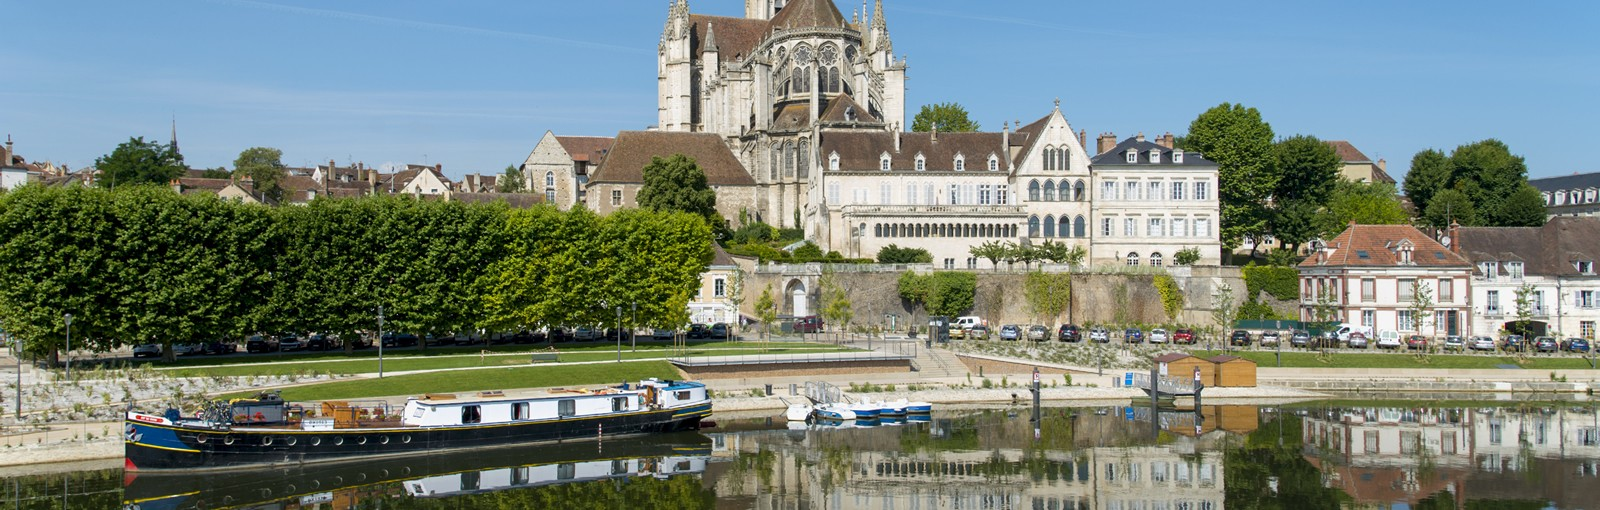 Tours Burgundy / Auxerre - Full days - Day tours from Paris